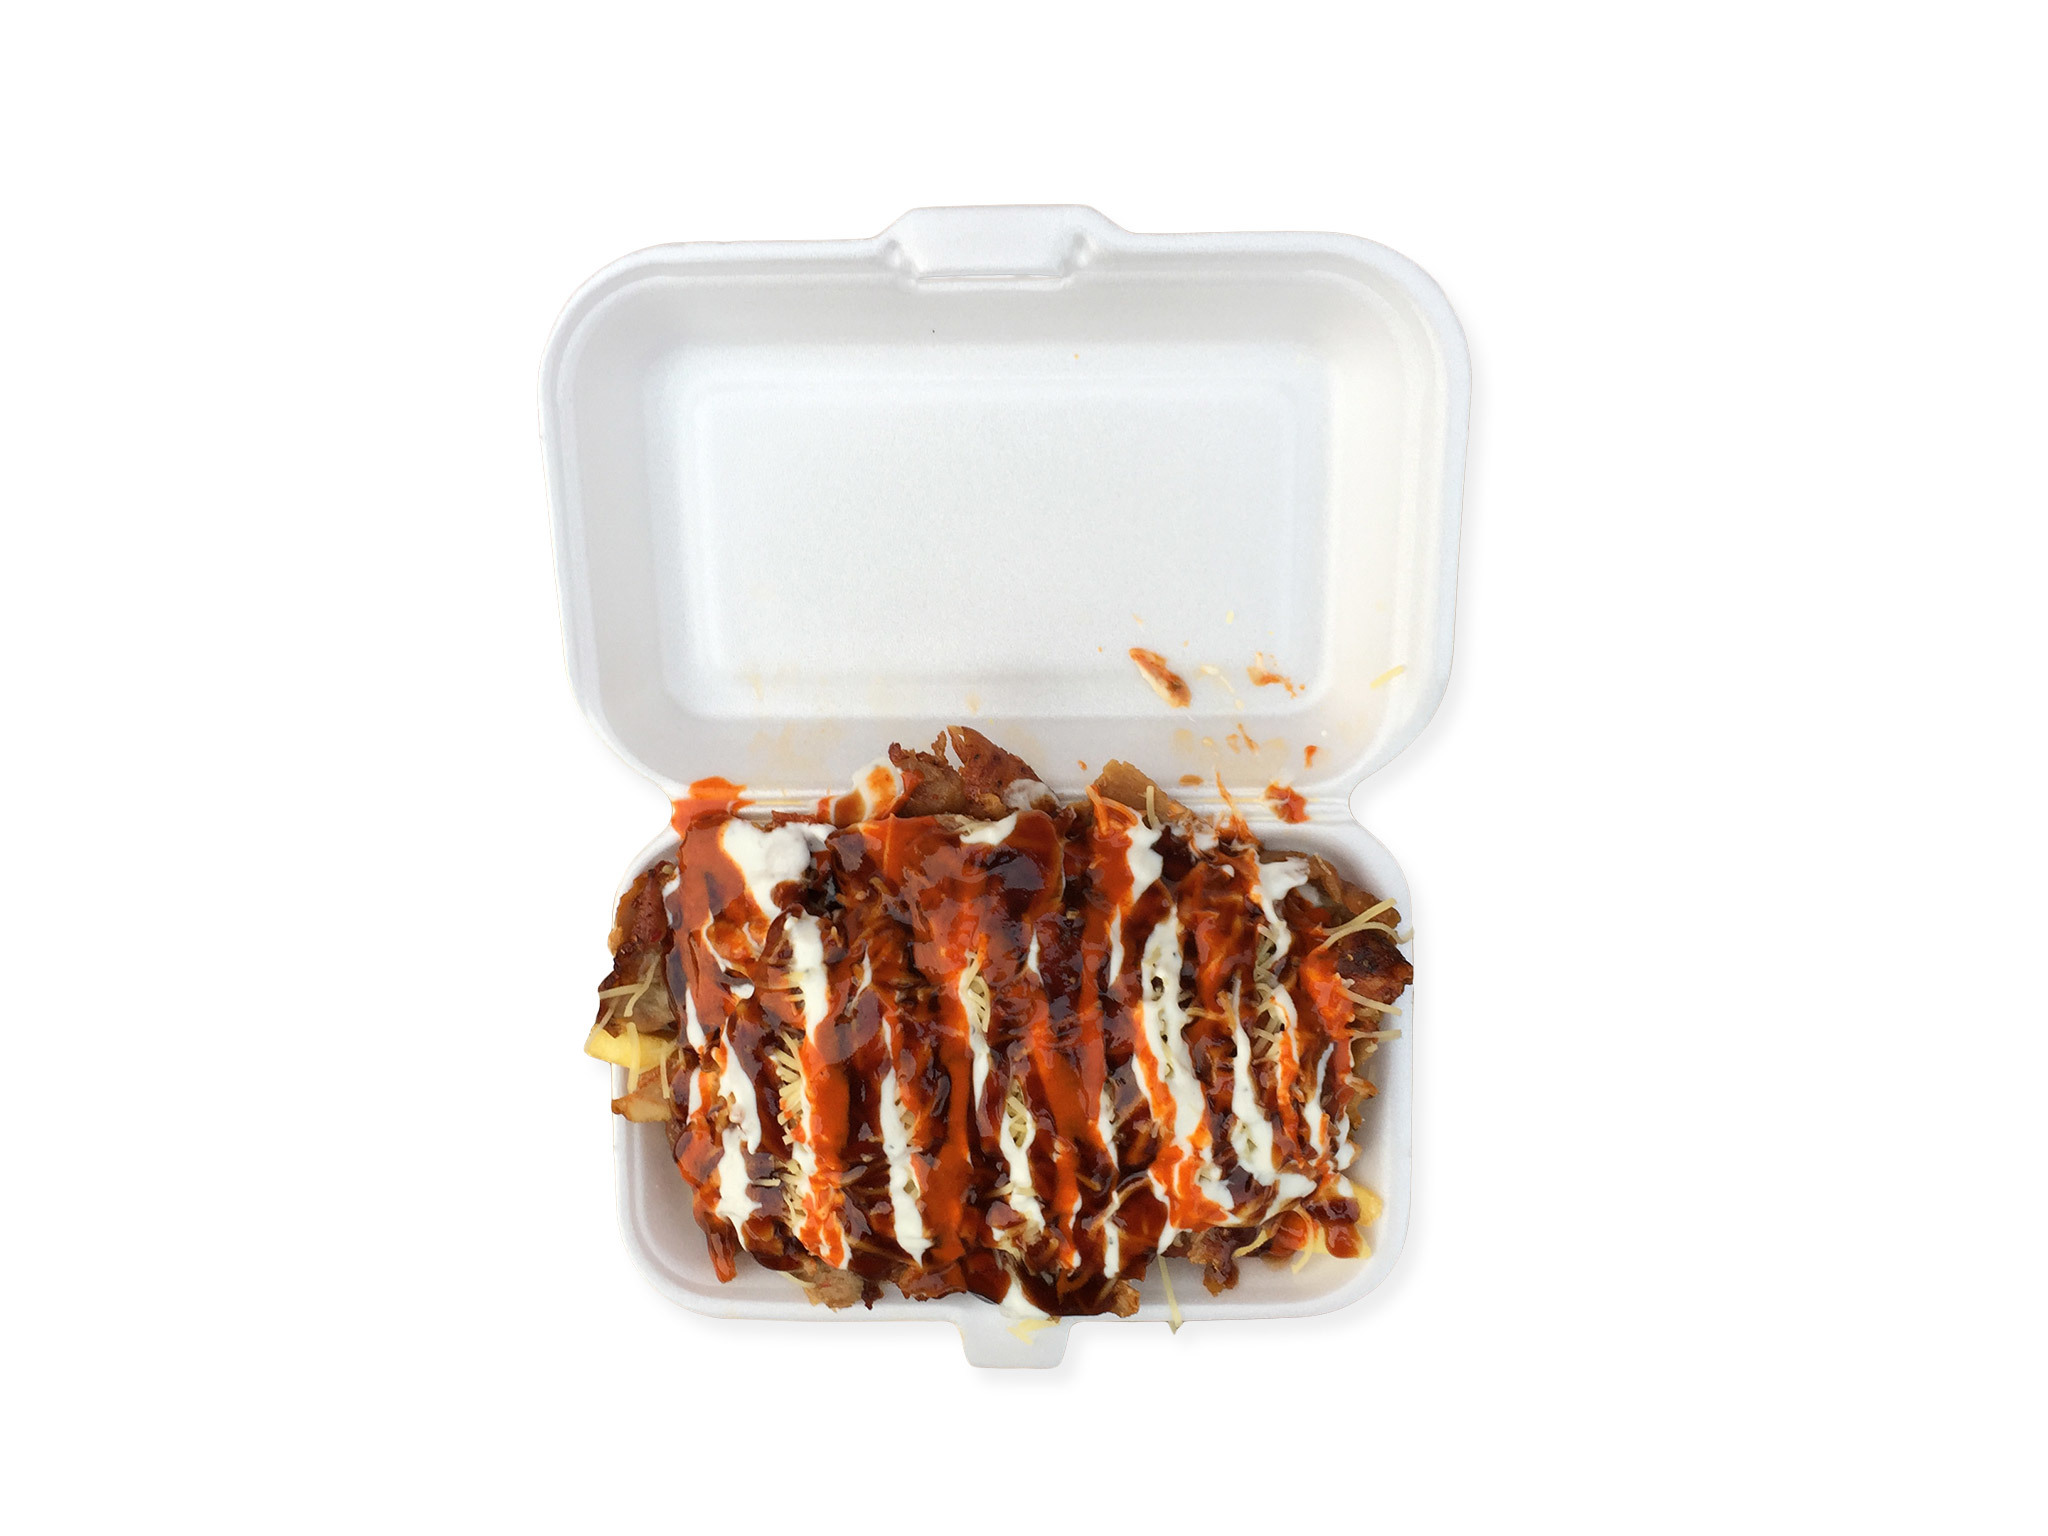 HSP at Kebab Express